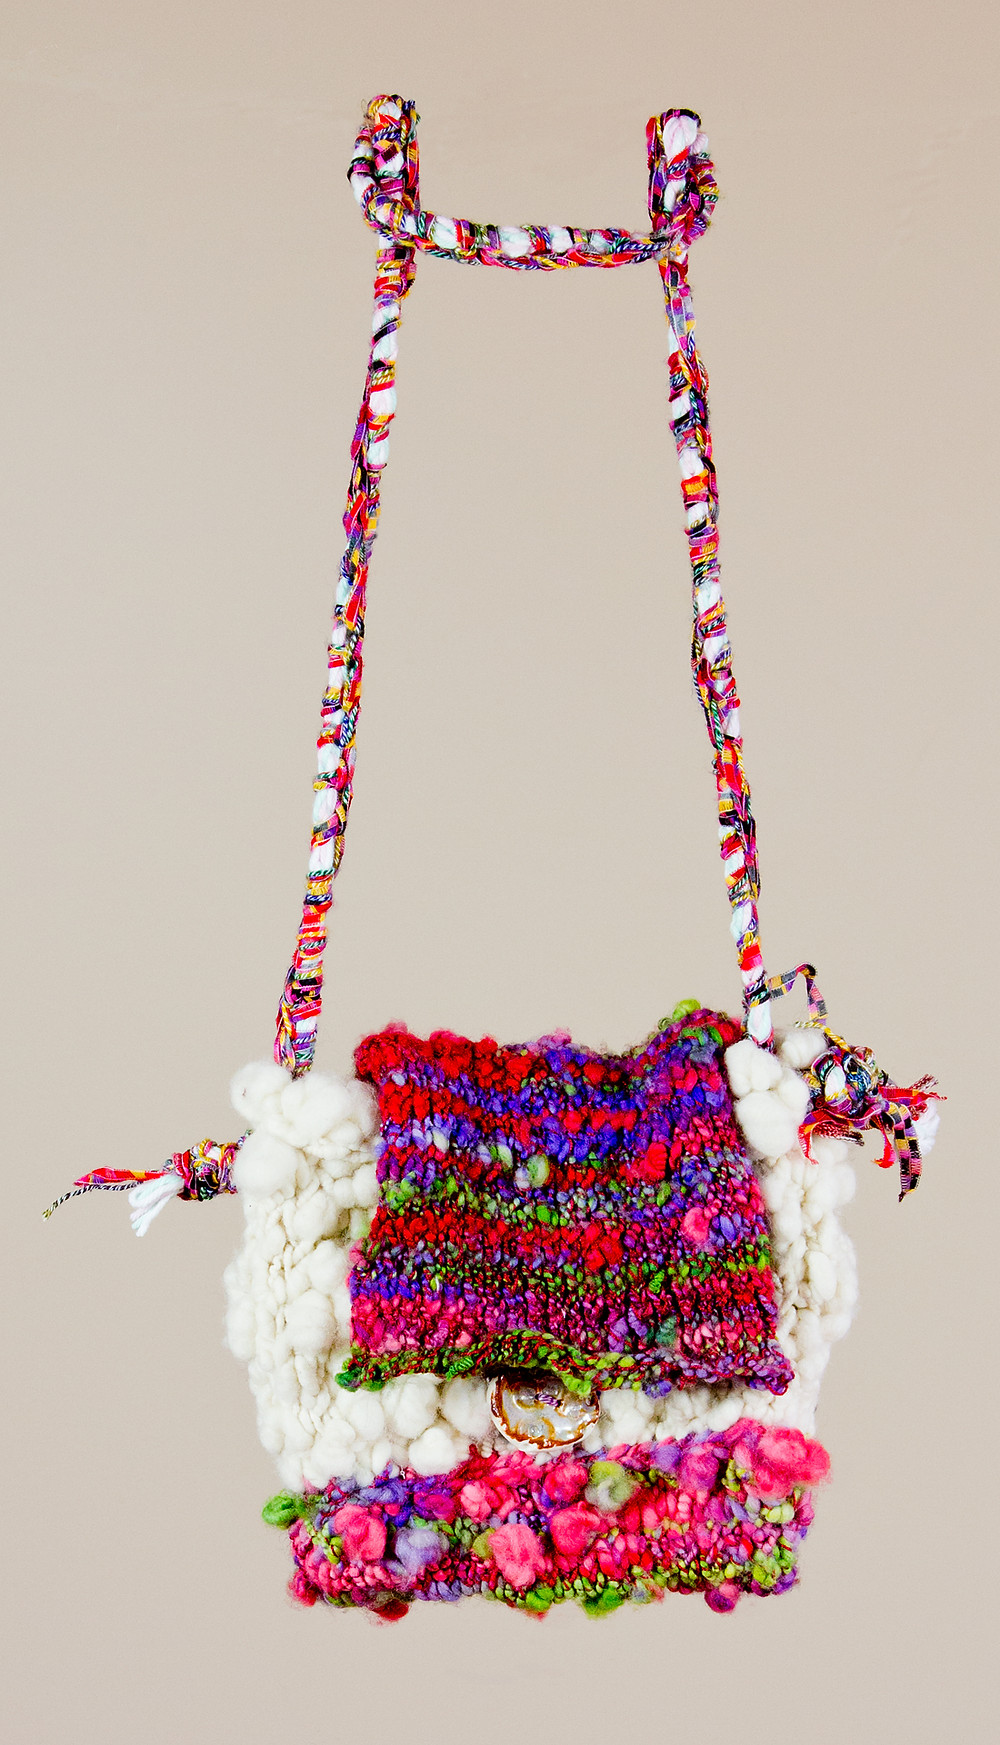 Handspun-Knitted-Purse.jpg